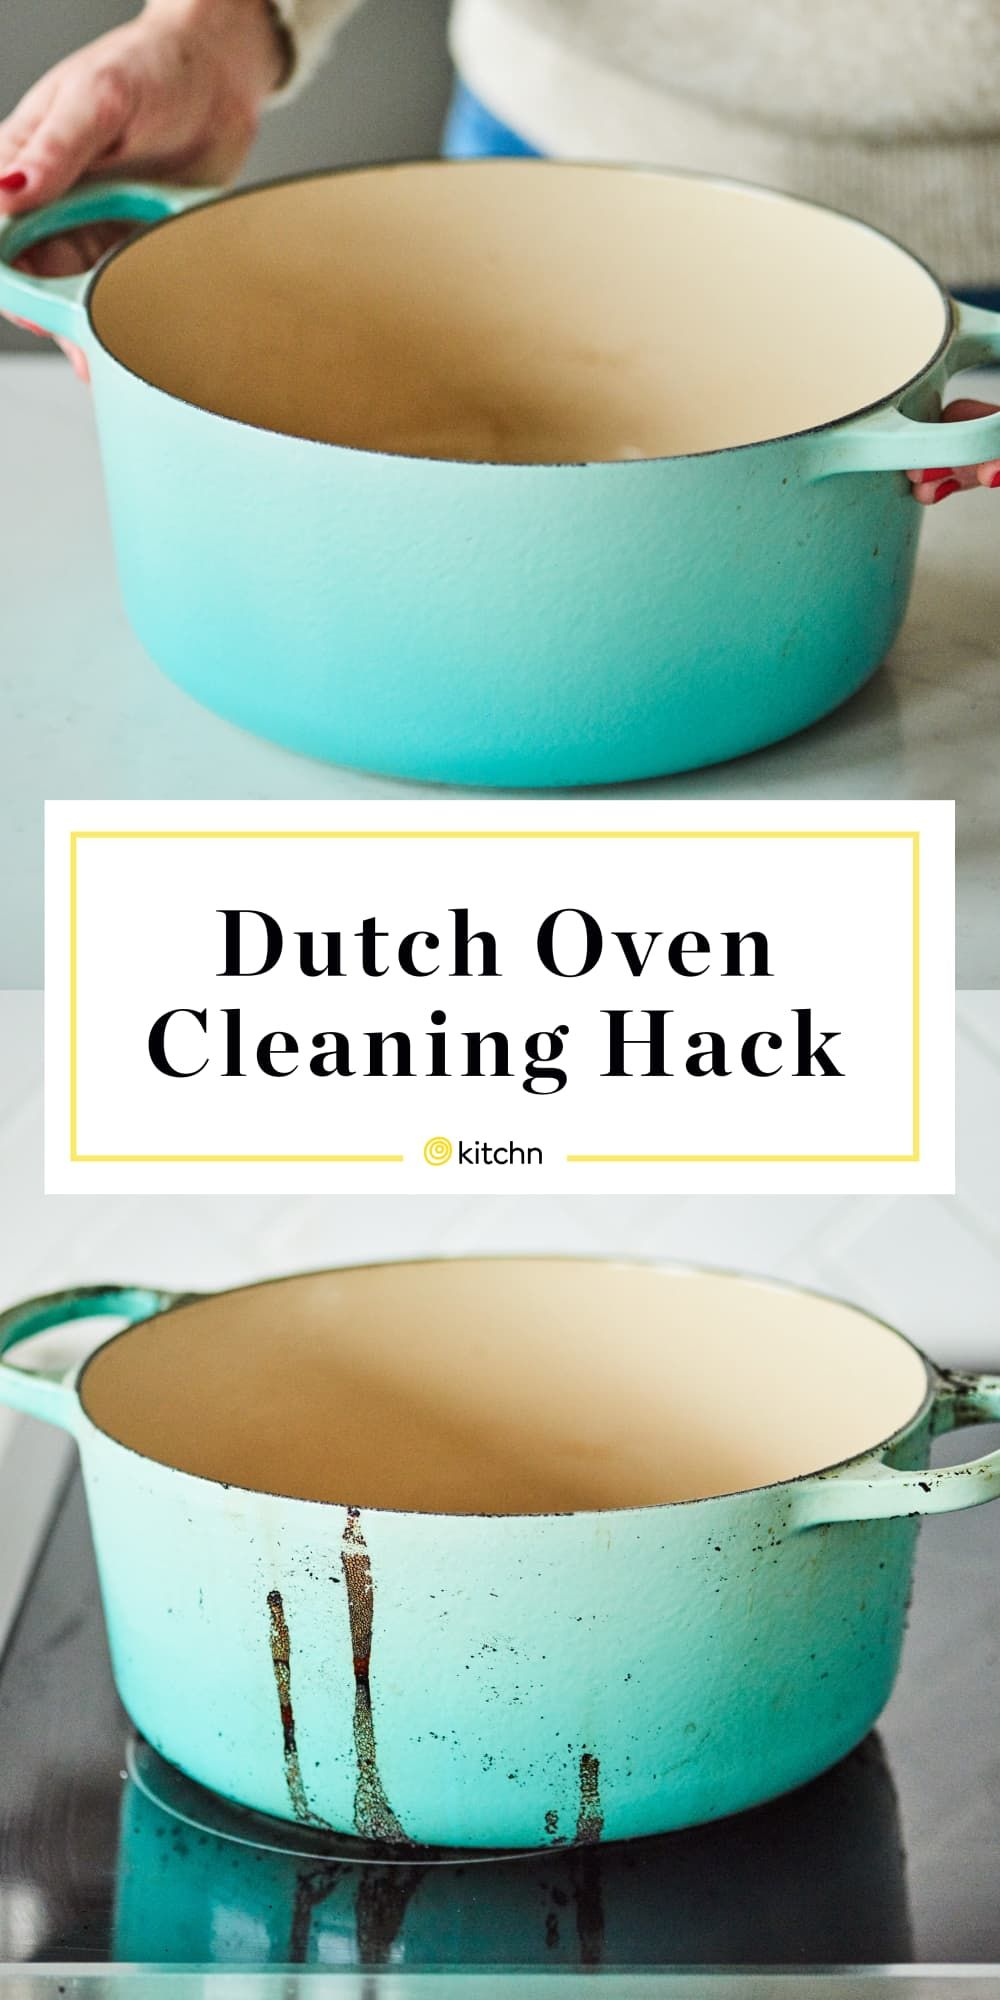 The Clever Reddit Tip For Getting A Le Creuset Dutch Oven Looking